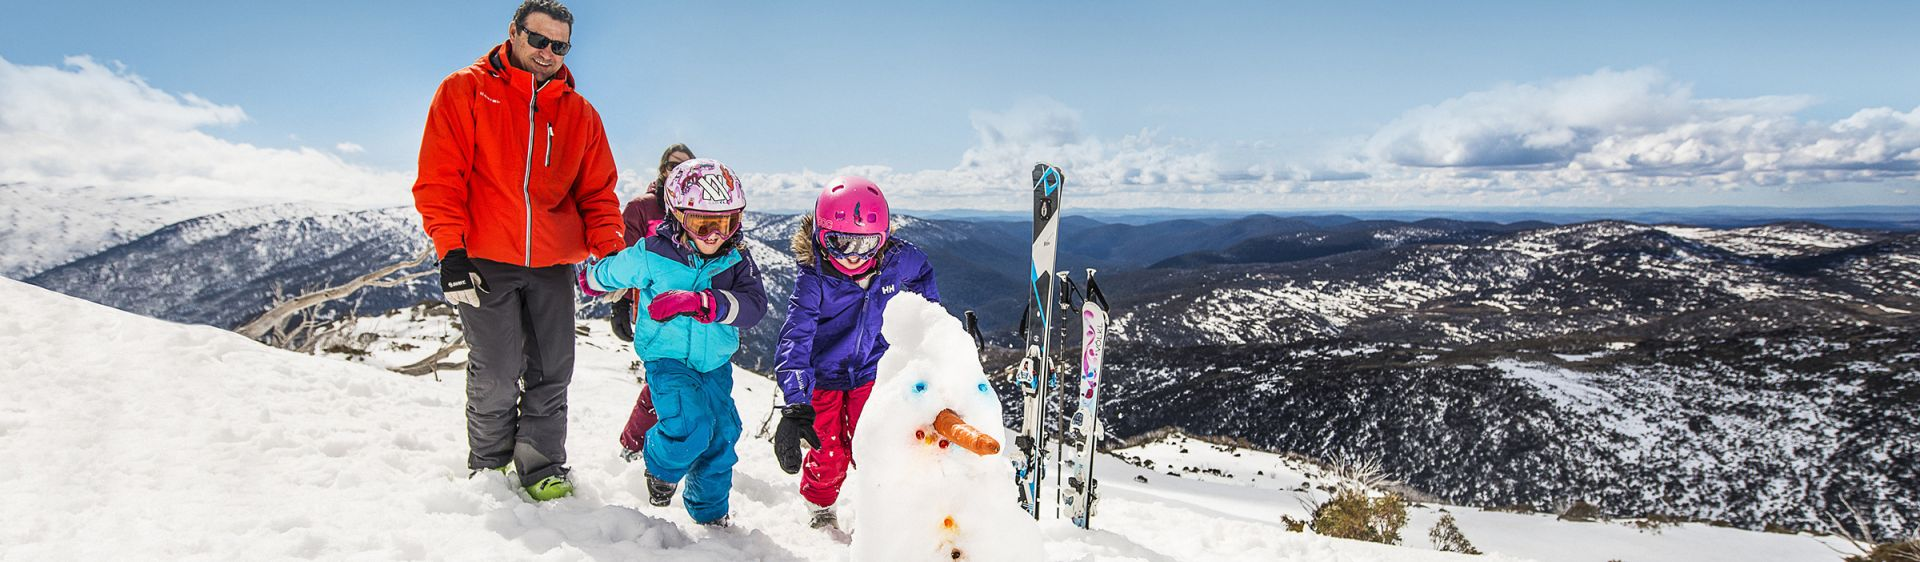 Perisher ski Village - family fun - Snowy Mountains